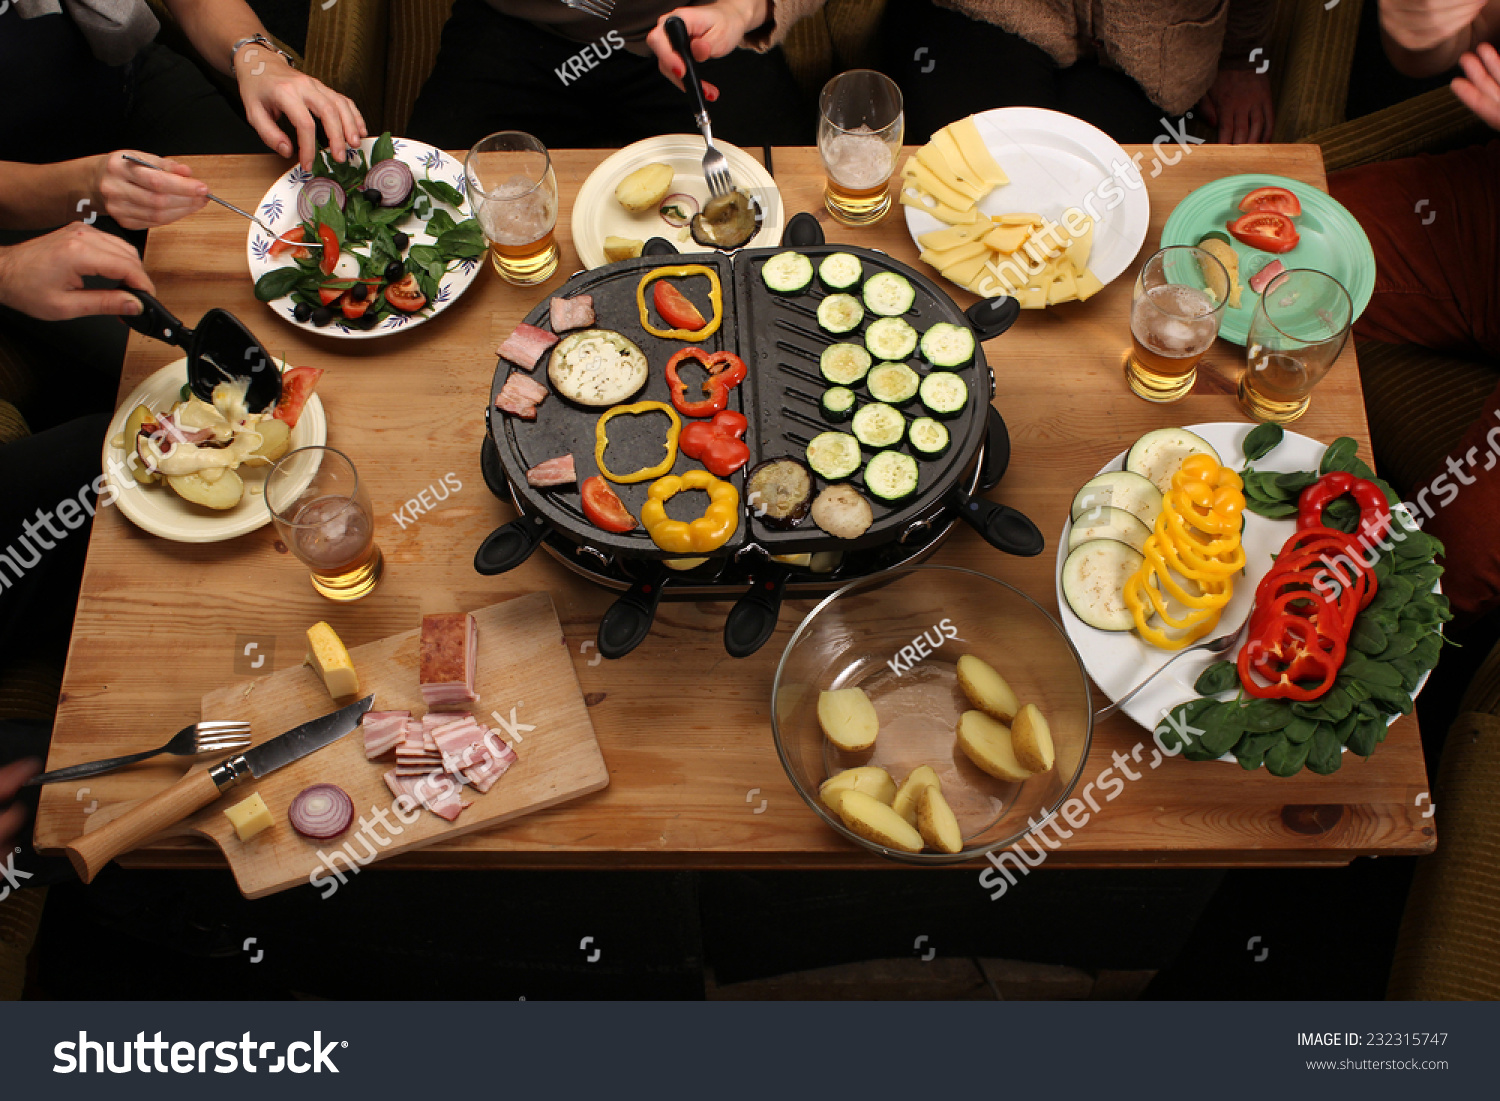 raclette grill party friends eating grilled stock photo 232315747 shutterstock. Black Bedroom Furniture Sets. Home Design Ideas